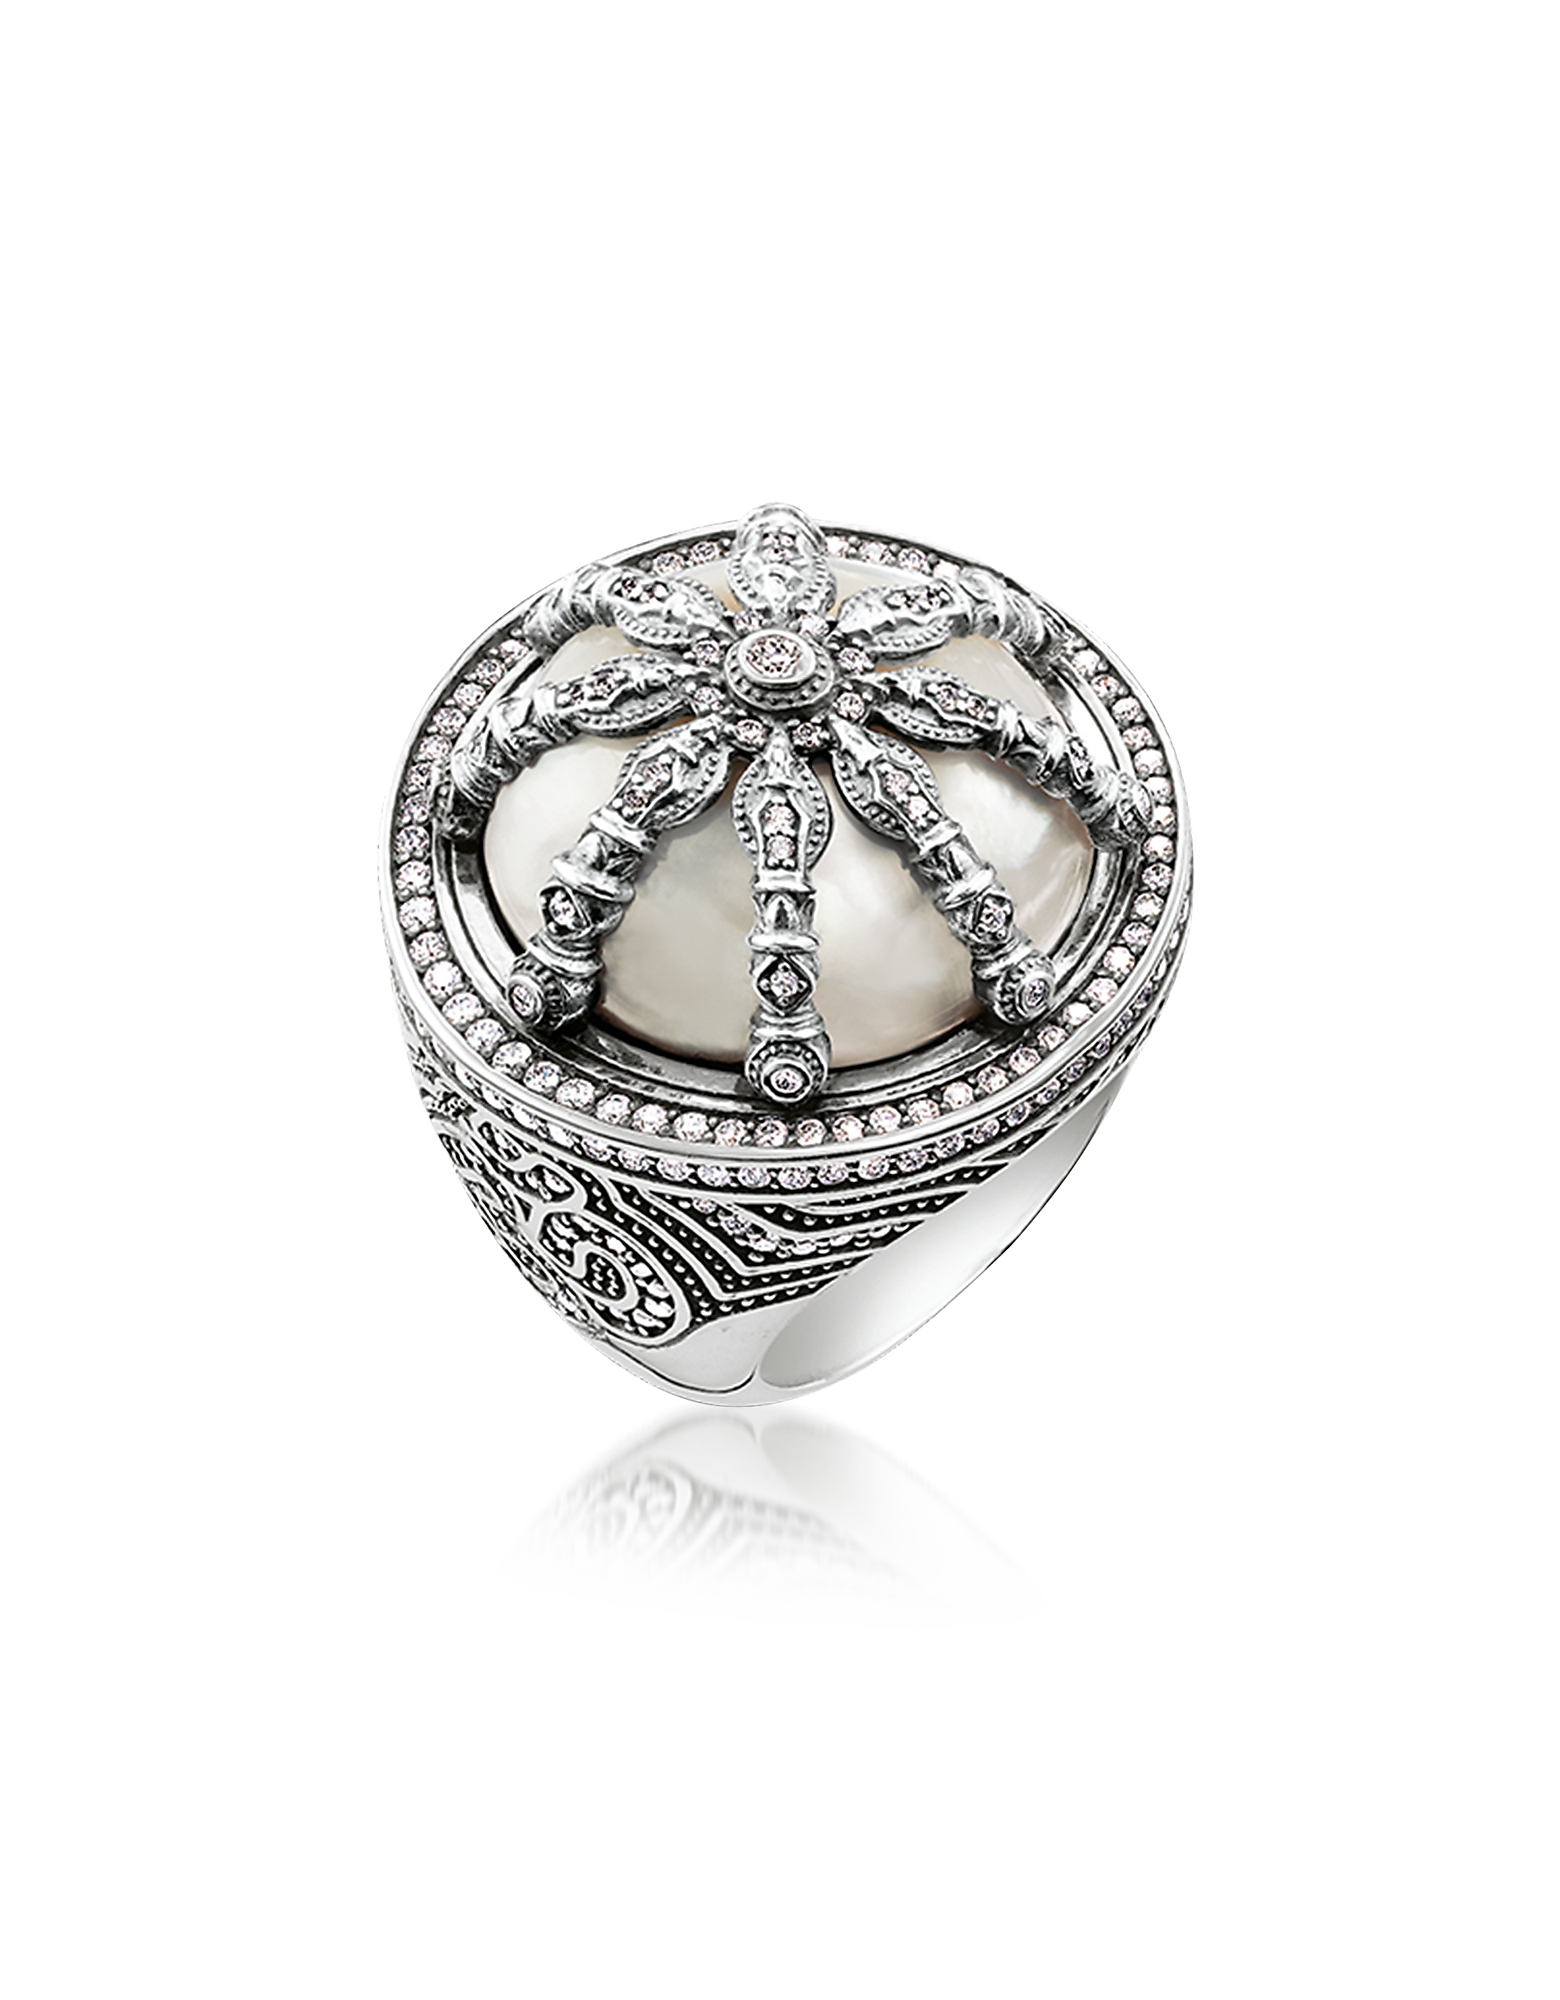 Thomas Sabo Rings, Blackened Sterling Silver & Mother of Pearl Ring w/White Cubic Zirconia